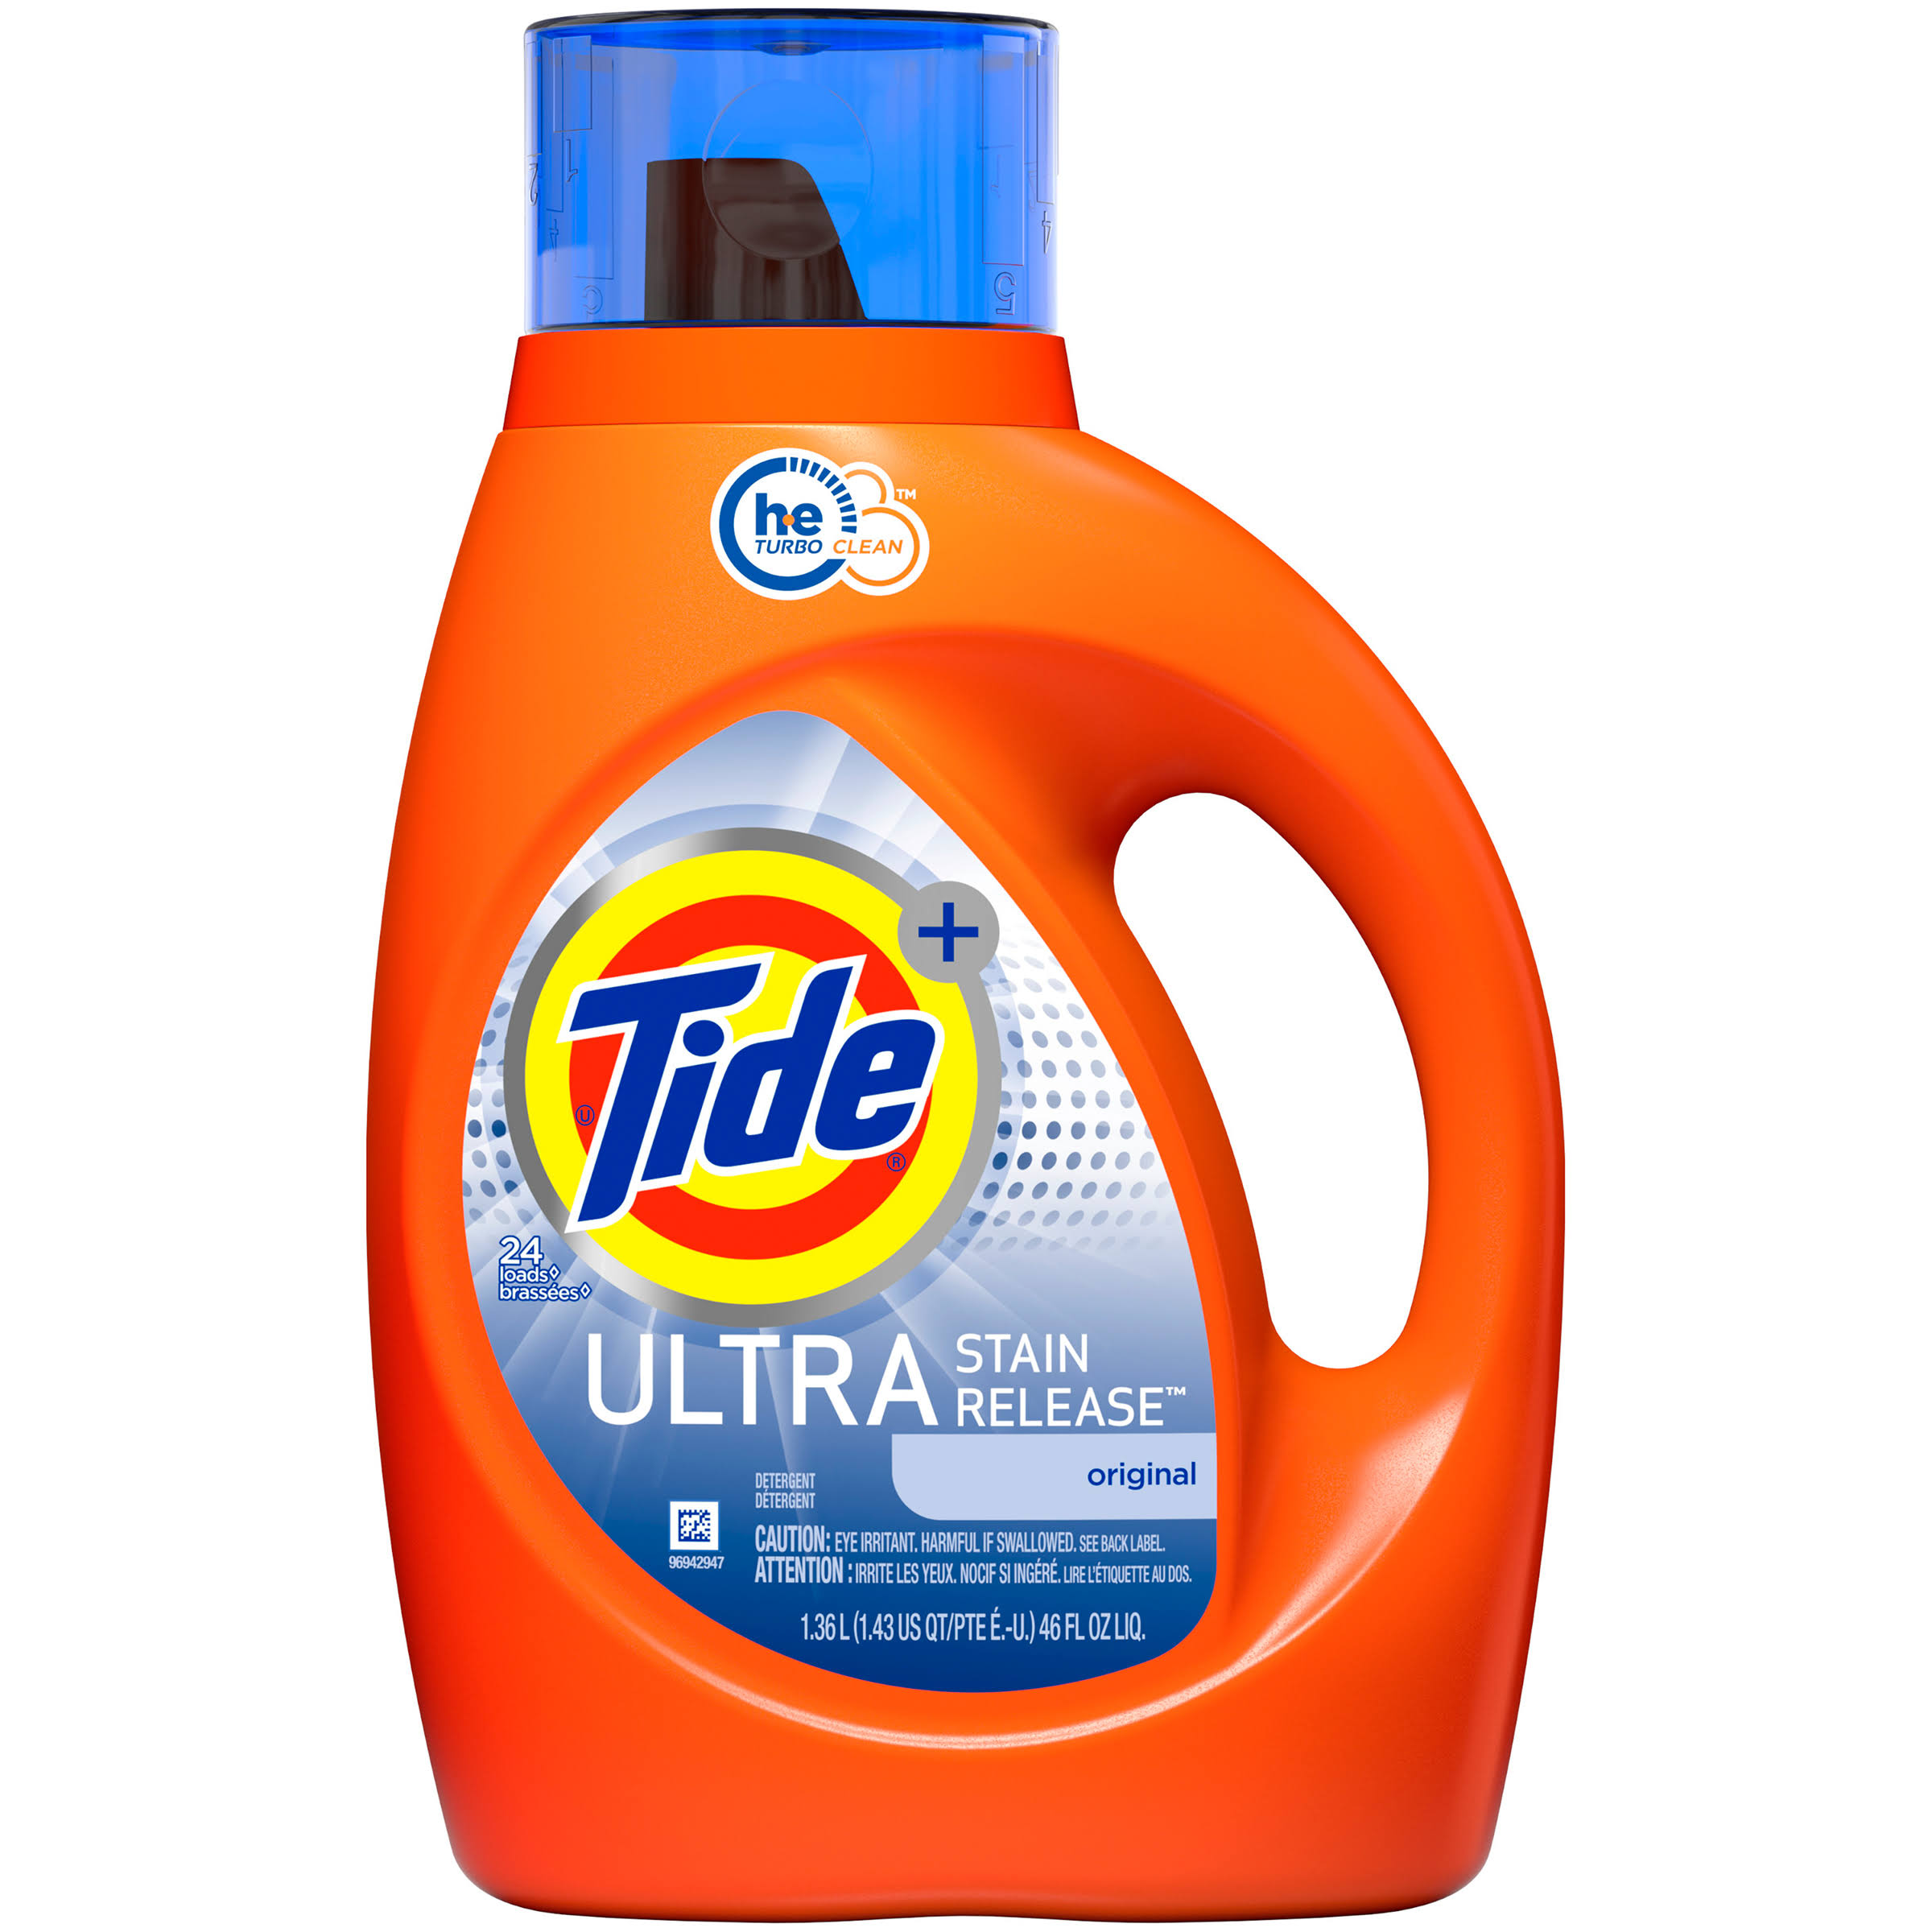 Tide Liquid Laundry Detergent - Ultra Stain Release, 46oz